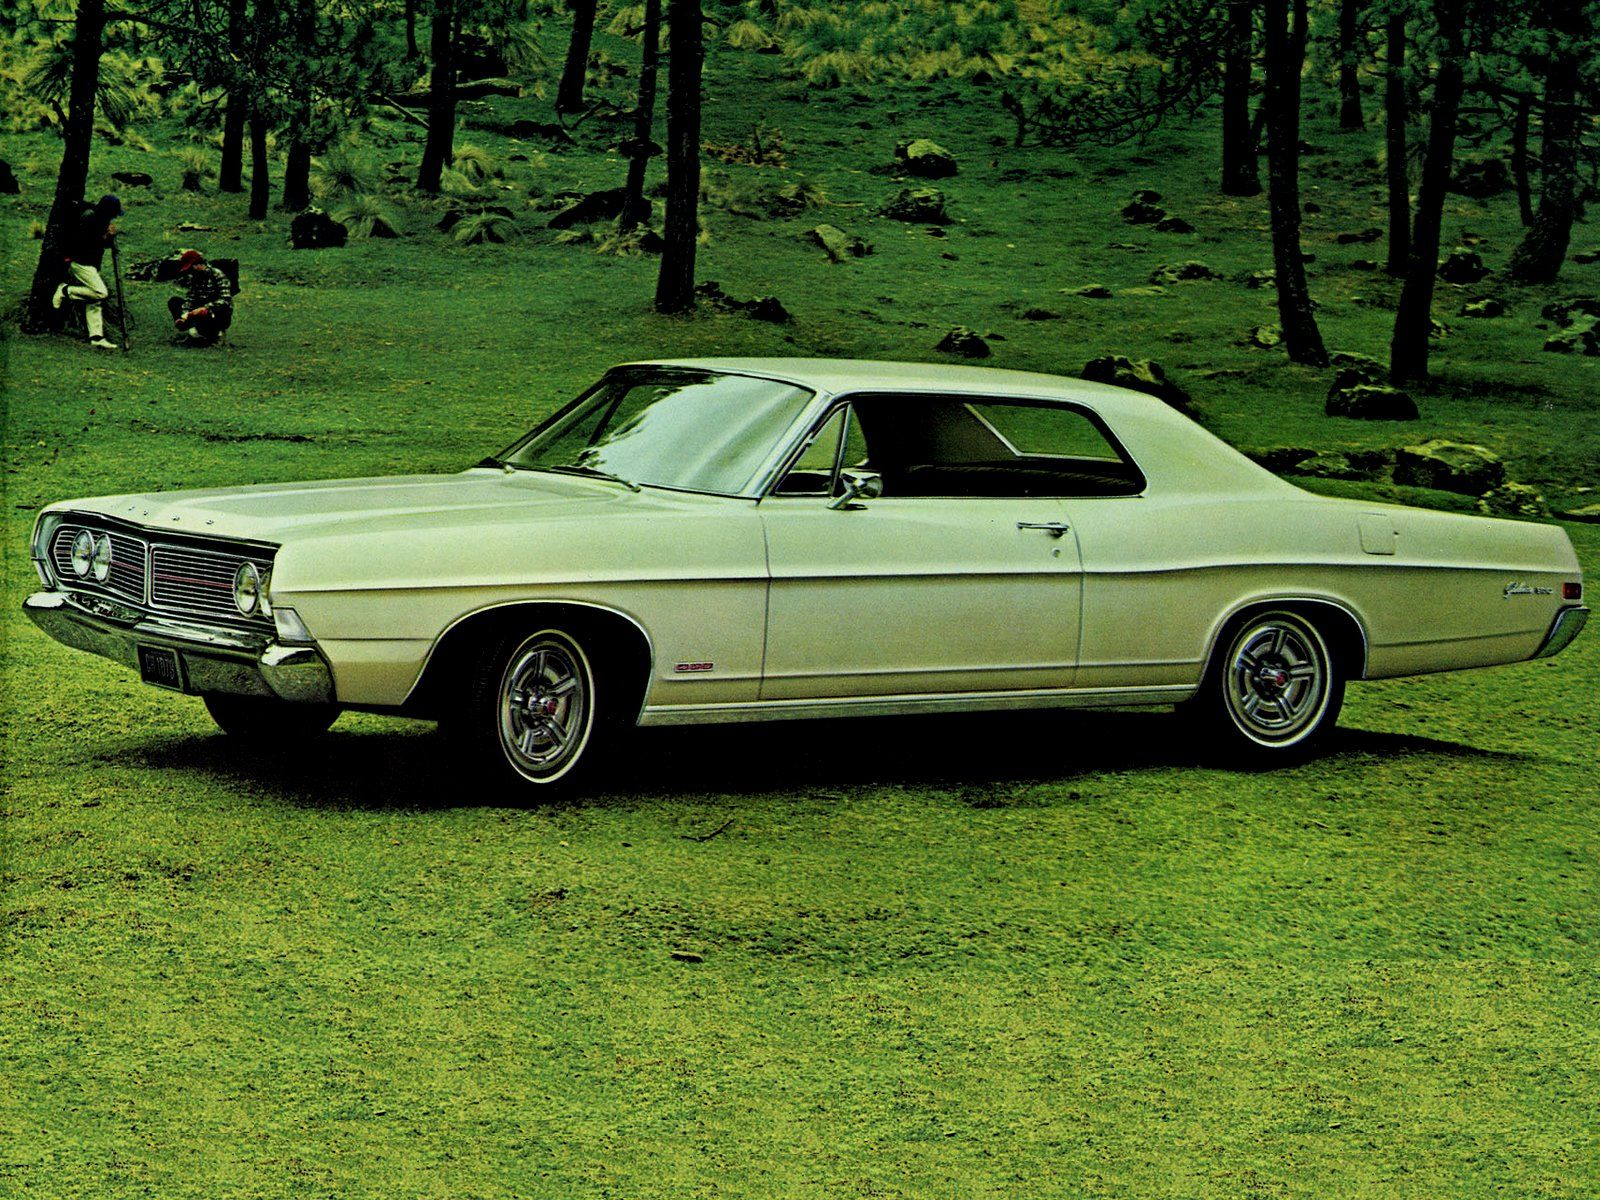 1968 Ford Galaxie 500 Hardtop Coupe